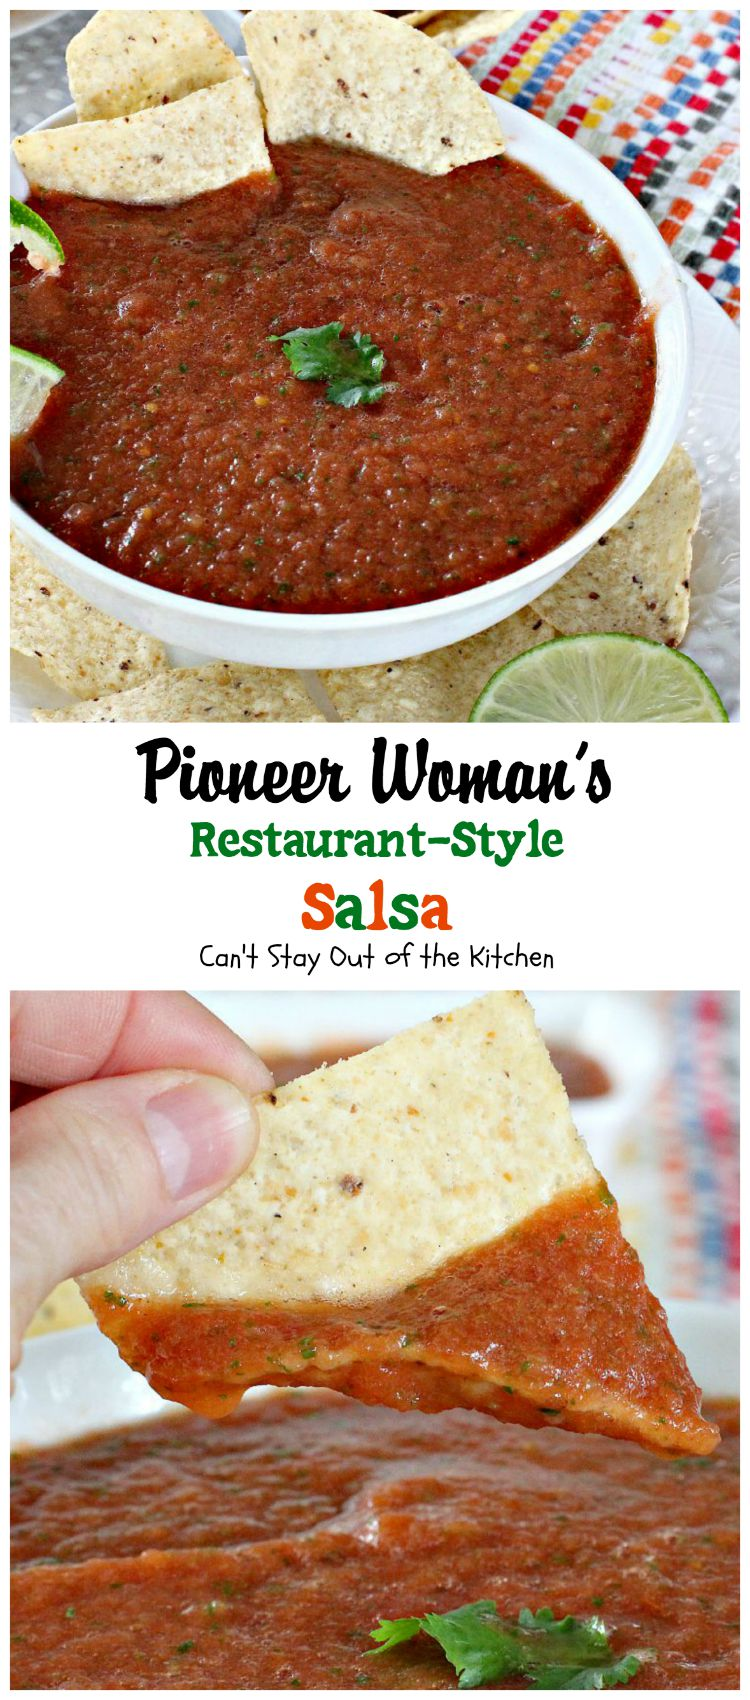 Pioneer Woman's Restaurant-Style Salsa | Can't Stay Out of the Kitche...